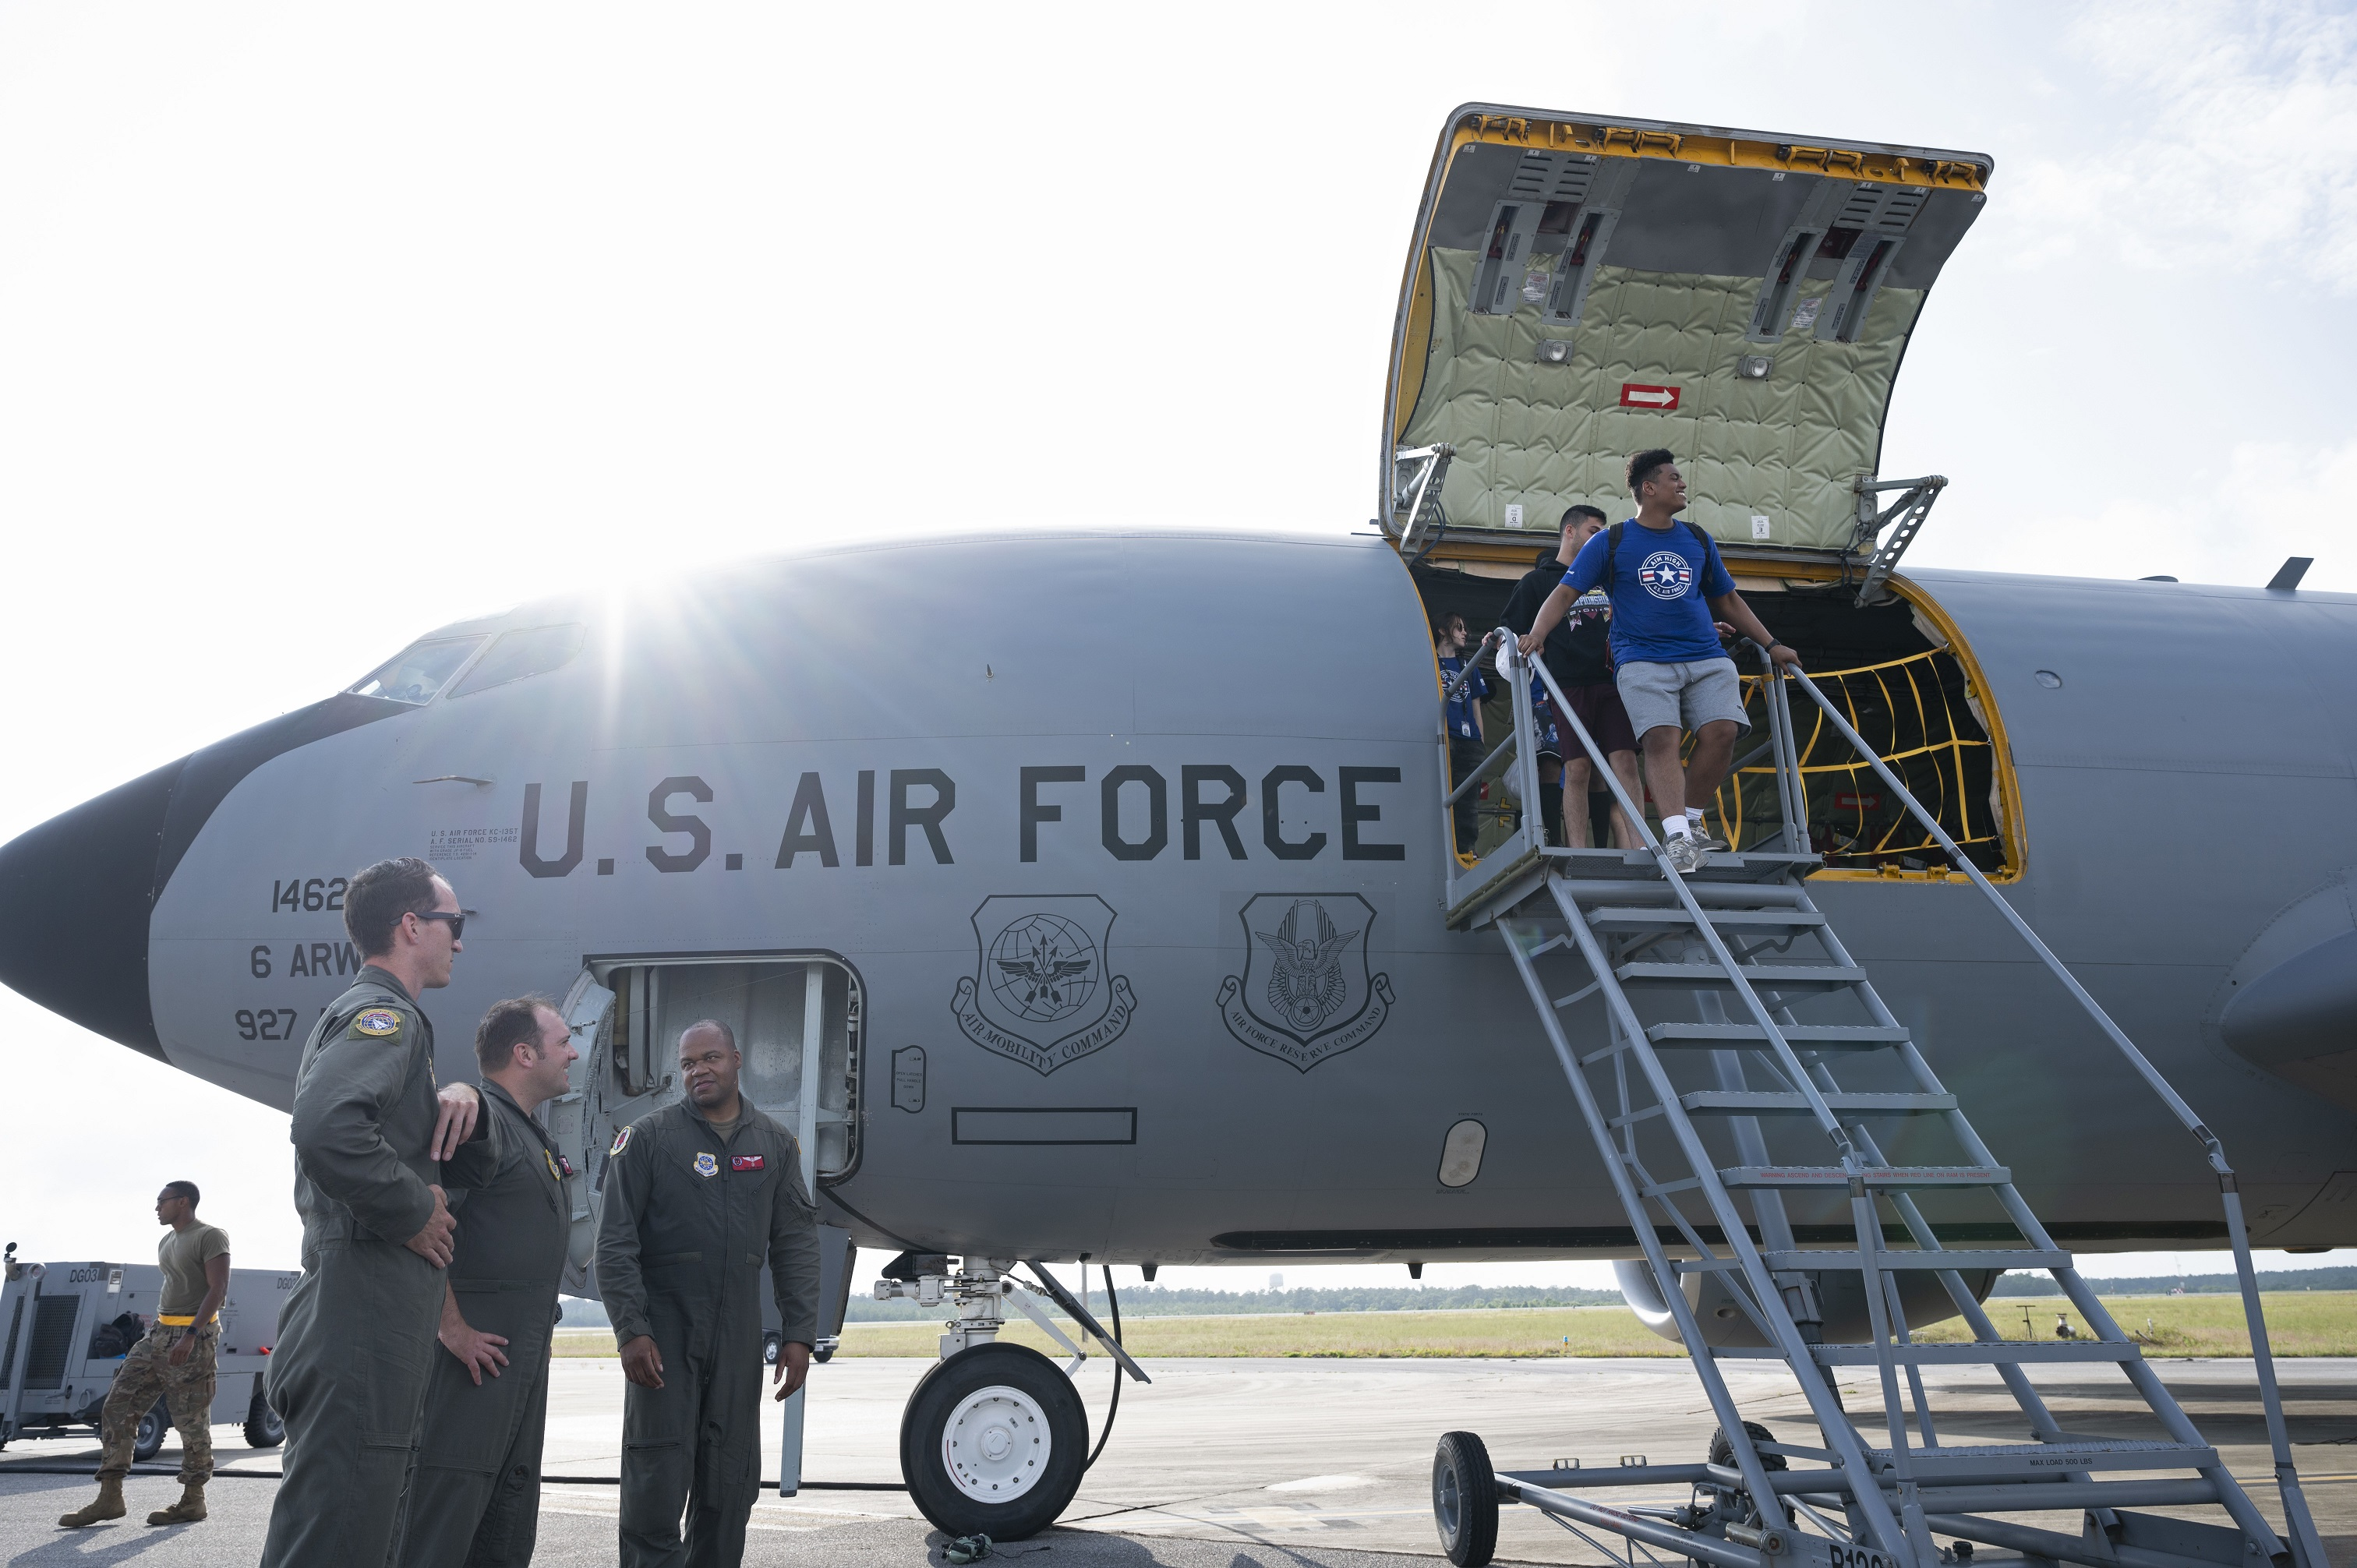 AIM HIGH Flight Academy students exit a 6th Air Refueling Wing KC-135 Stratotanker after a flight at Eglin Air Force Base, Florida, June 7, 2021.